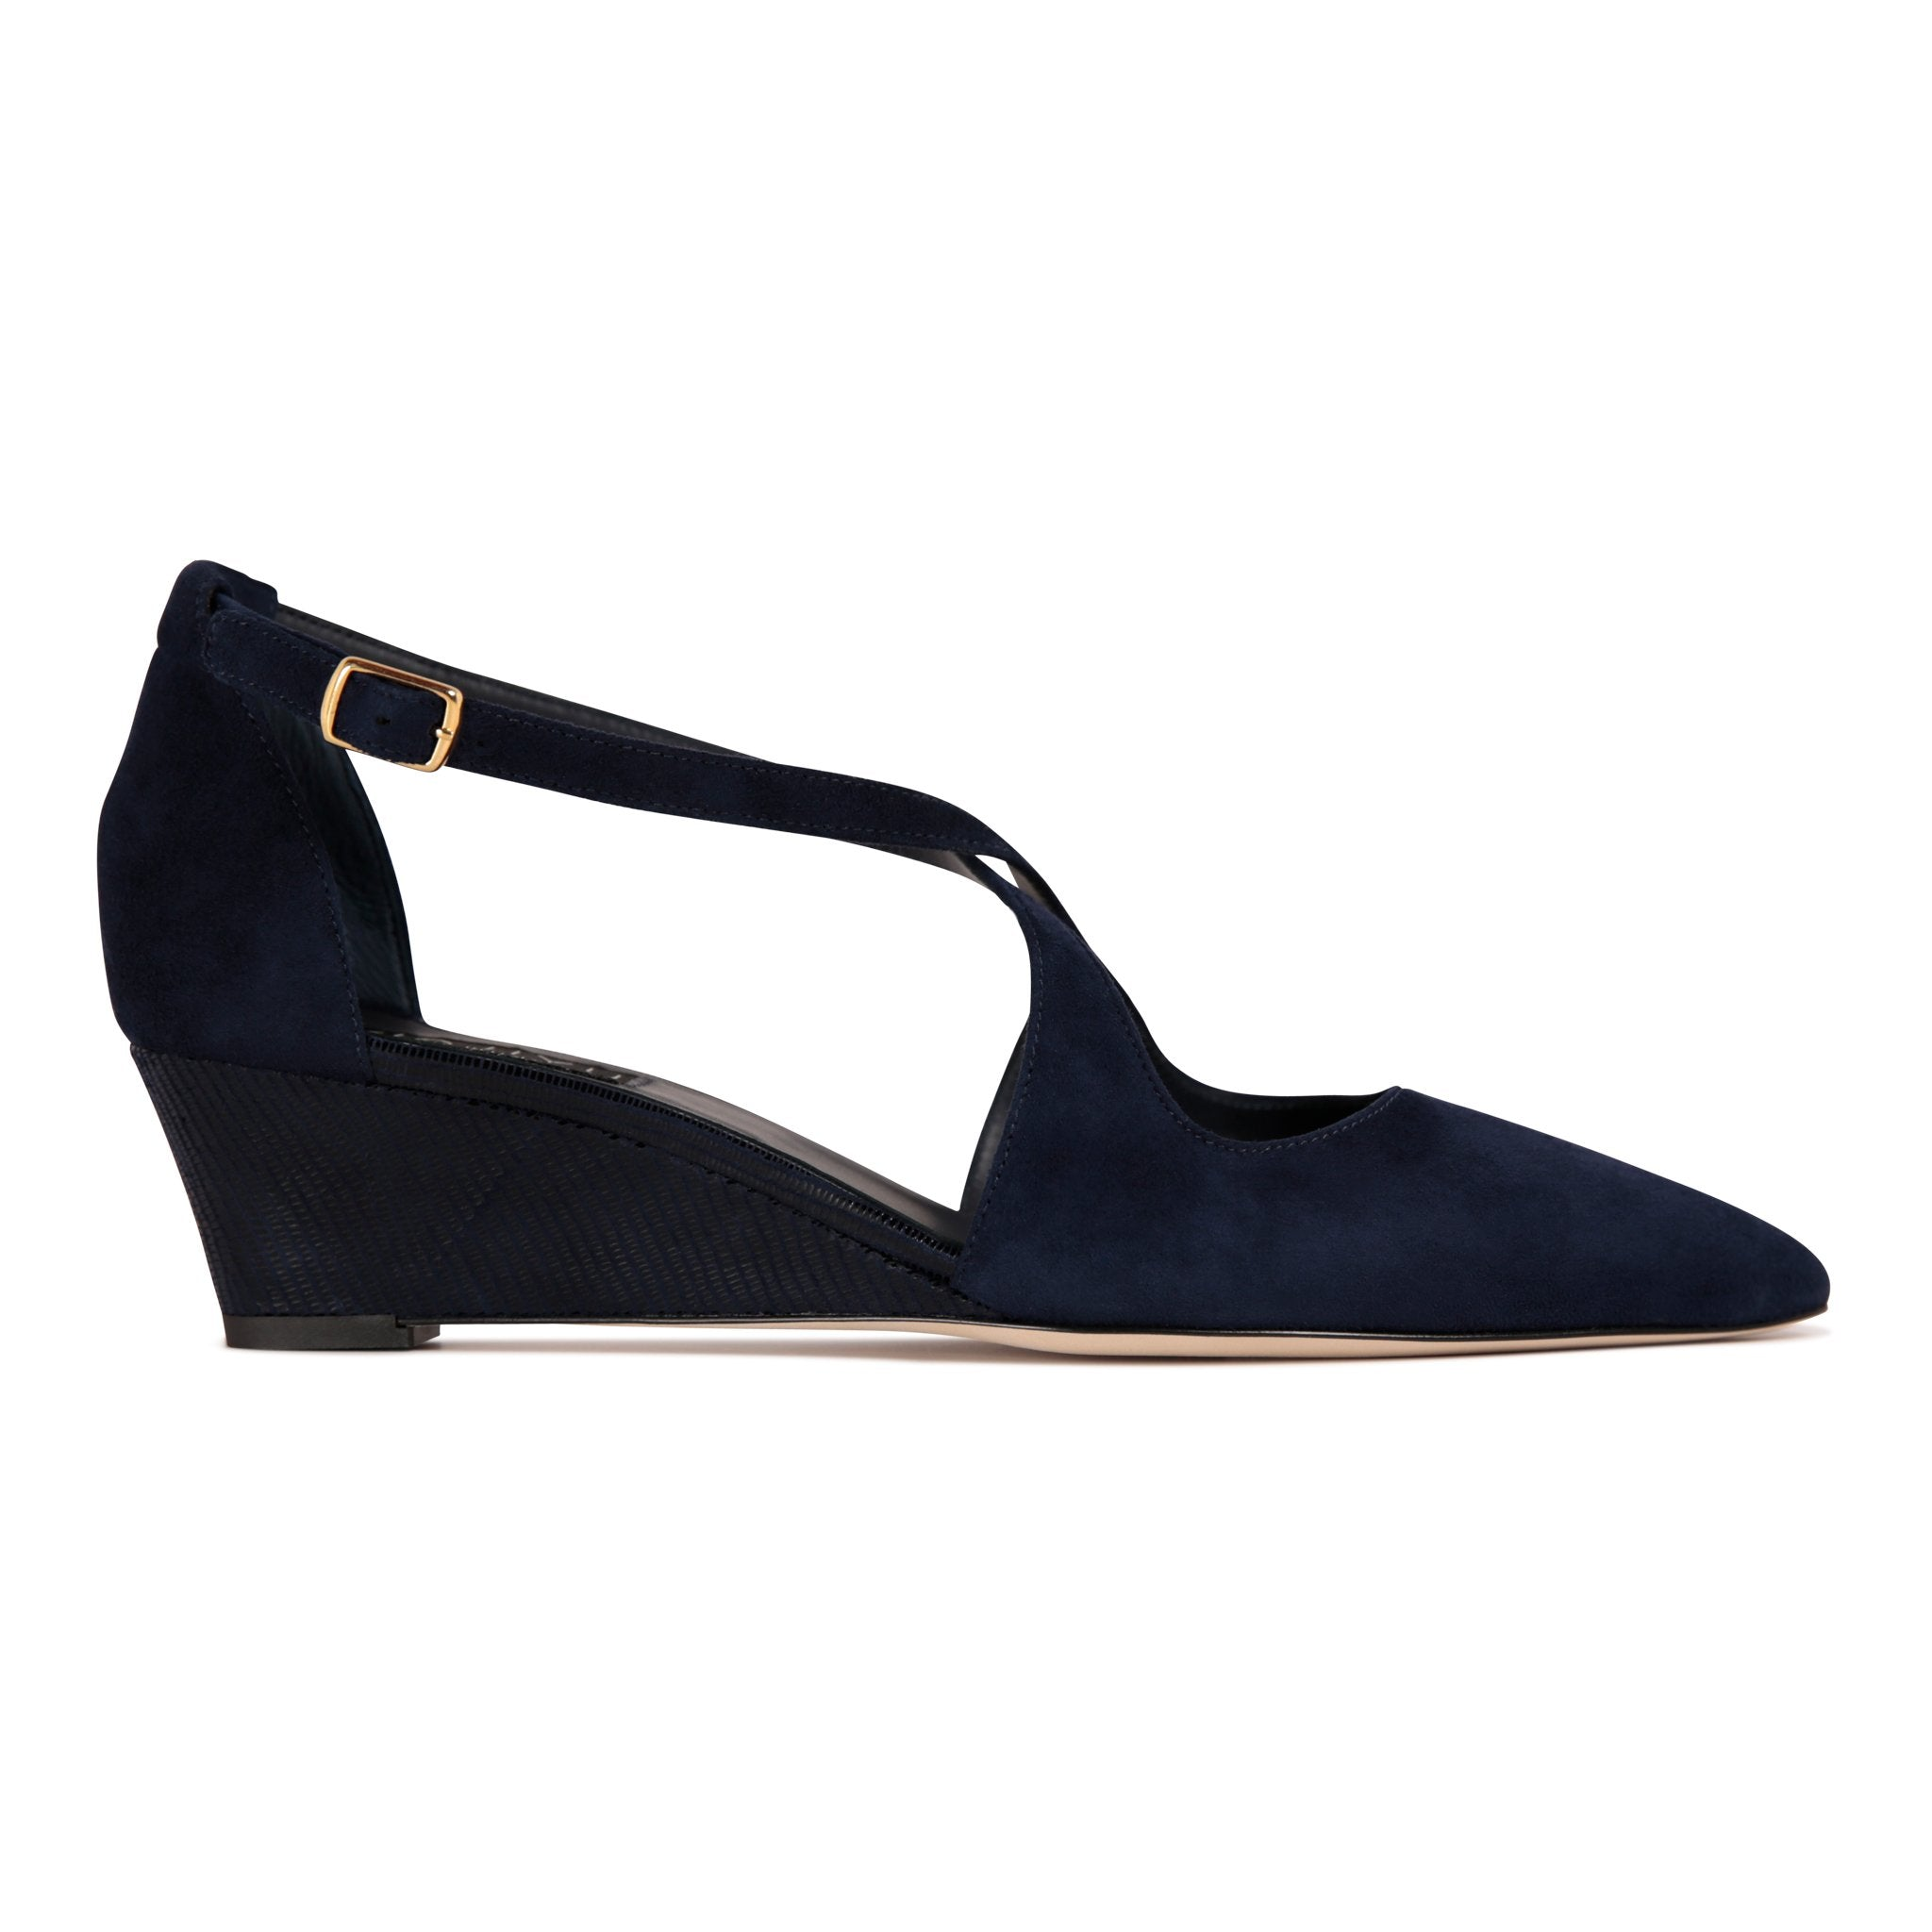 AREZZO - Velukid Midnight + Varanus, VIAJIYU - Women's Hand Made Sustainable Luxury Shoes. Made in Italy. Made to Order.